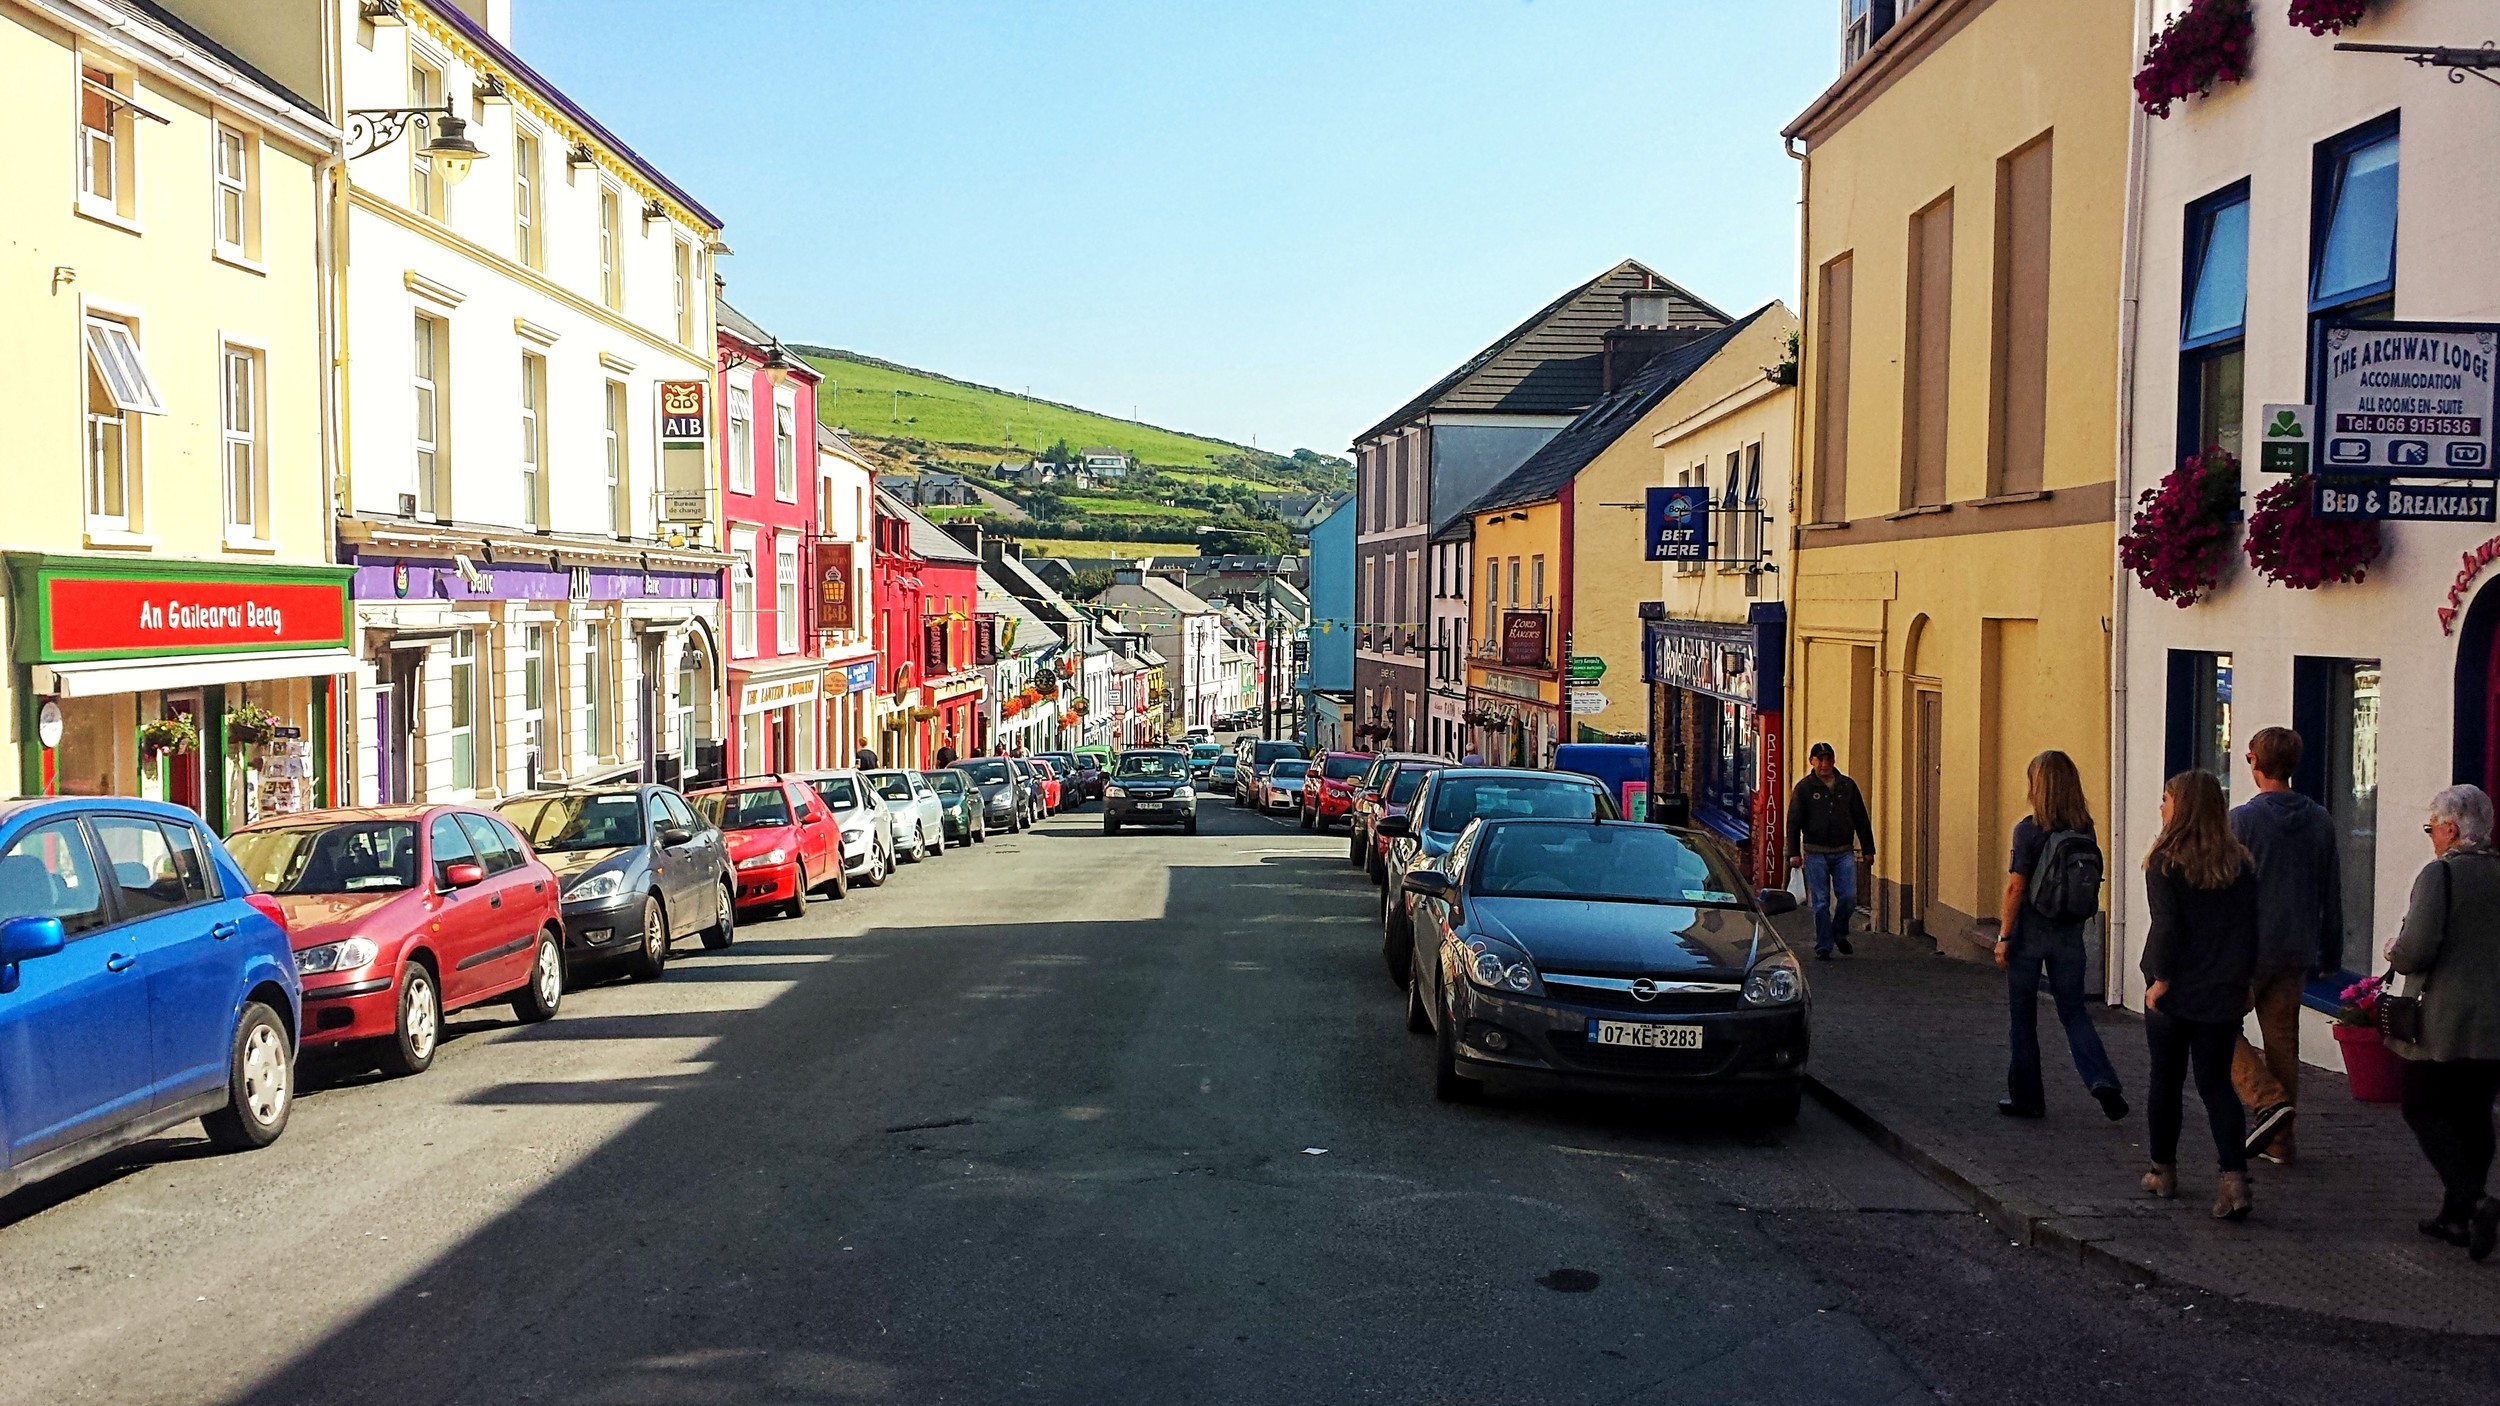 The beautiful town of Dingle